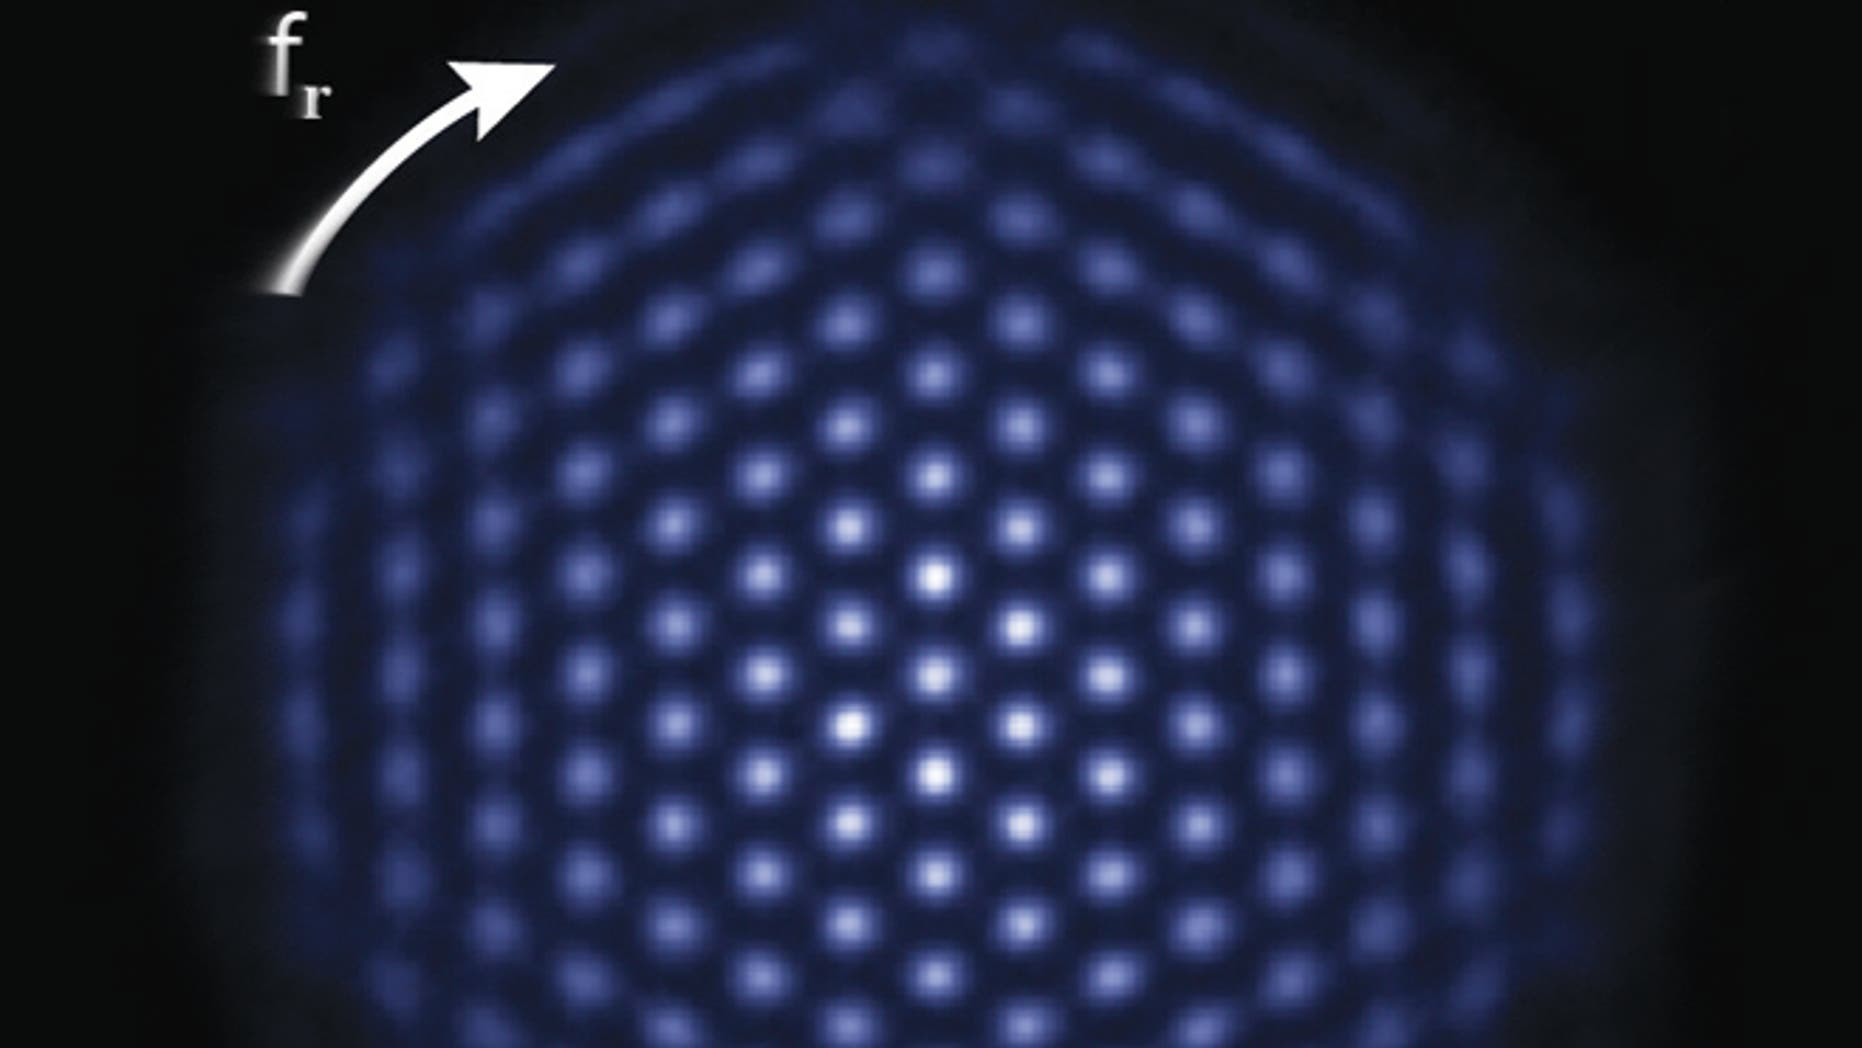 The NIST simulator consists of a tiny, single-plane crystal of hundreds of beryllium ions, less than 1 millimeter in diameter, hovering inside a device called a Penning trap. Here, the ions are glowing, indicating that they are all in the same quantum state. Under the right experimental conditions, the ion crystal spontaneously forms this nearly perfect triangular lattice structure.